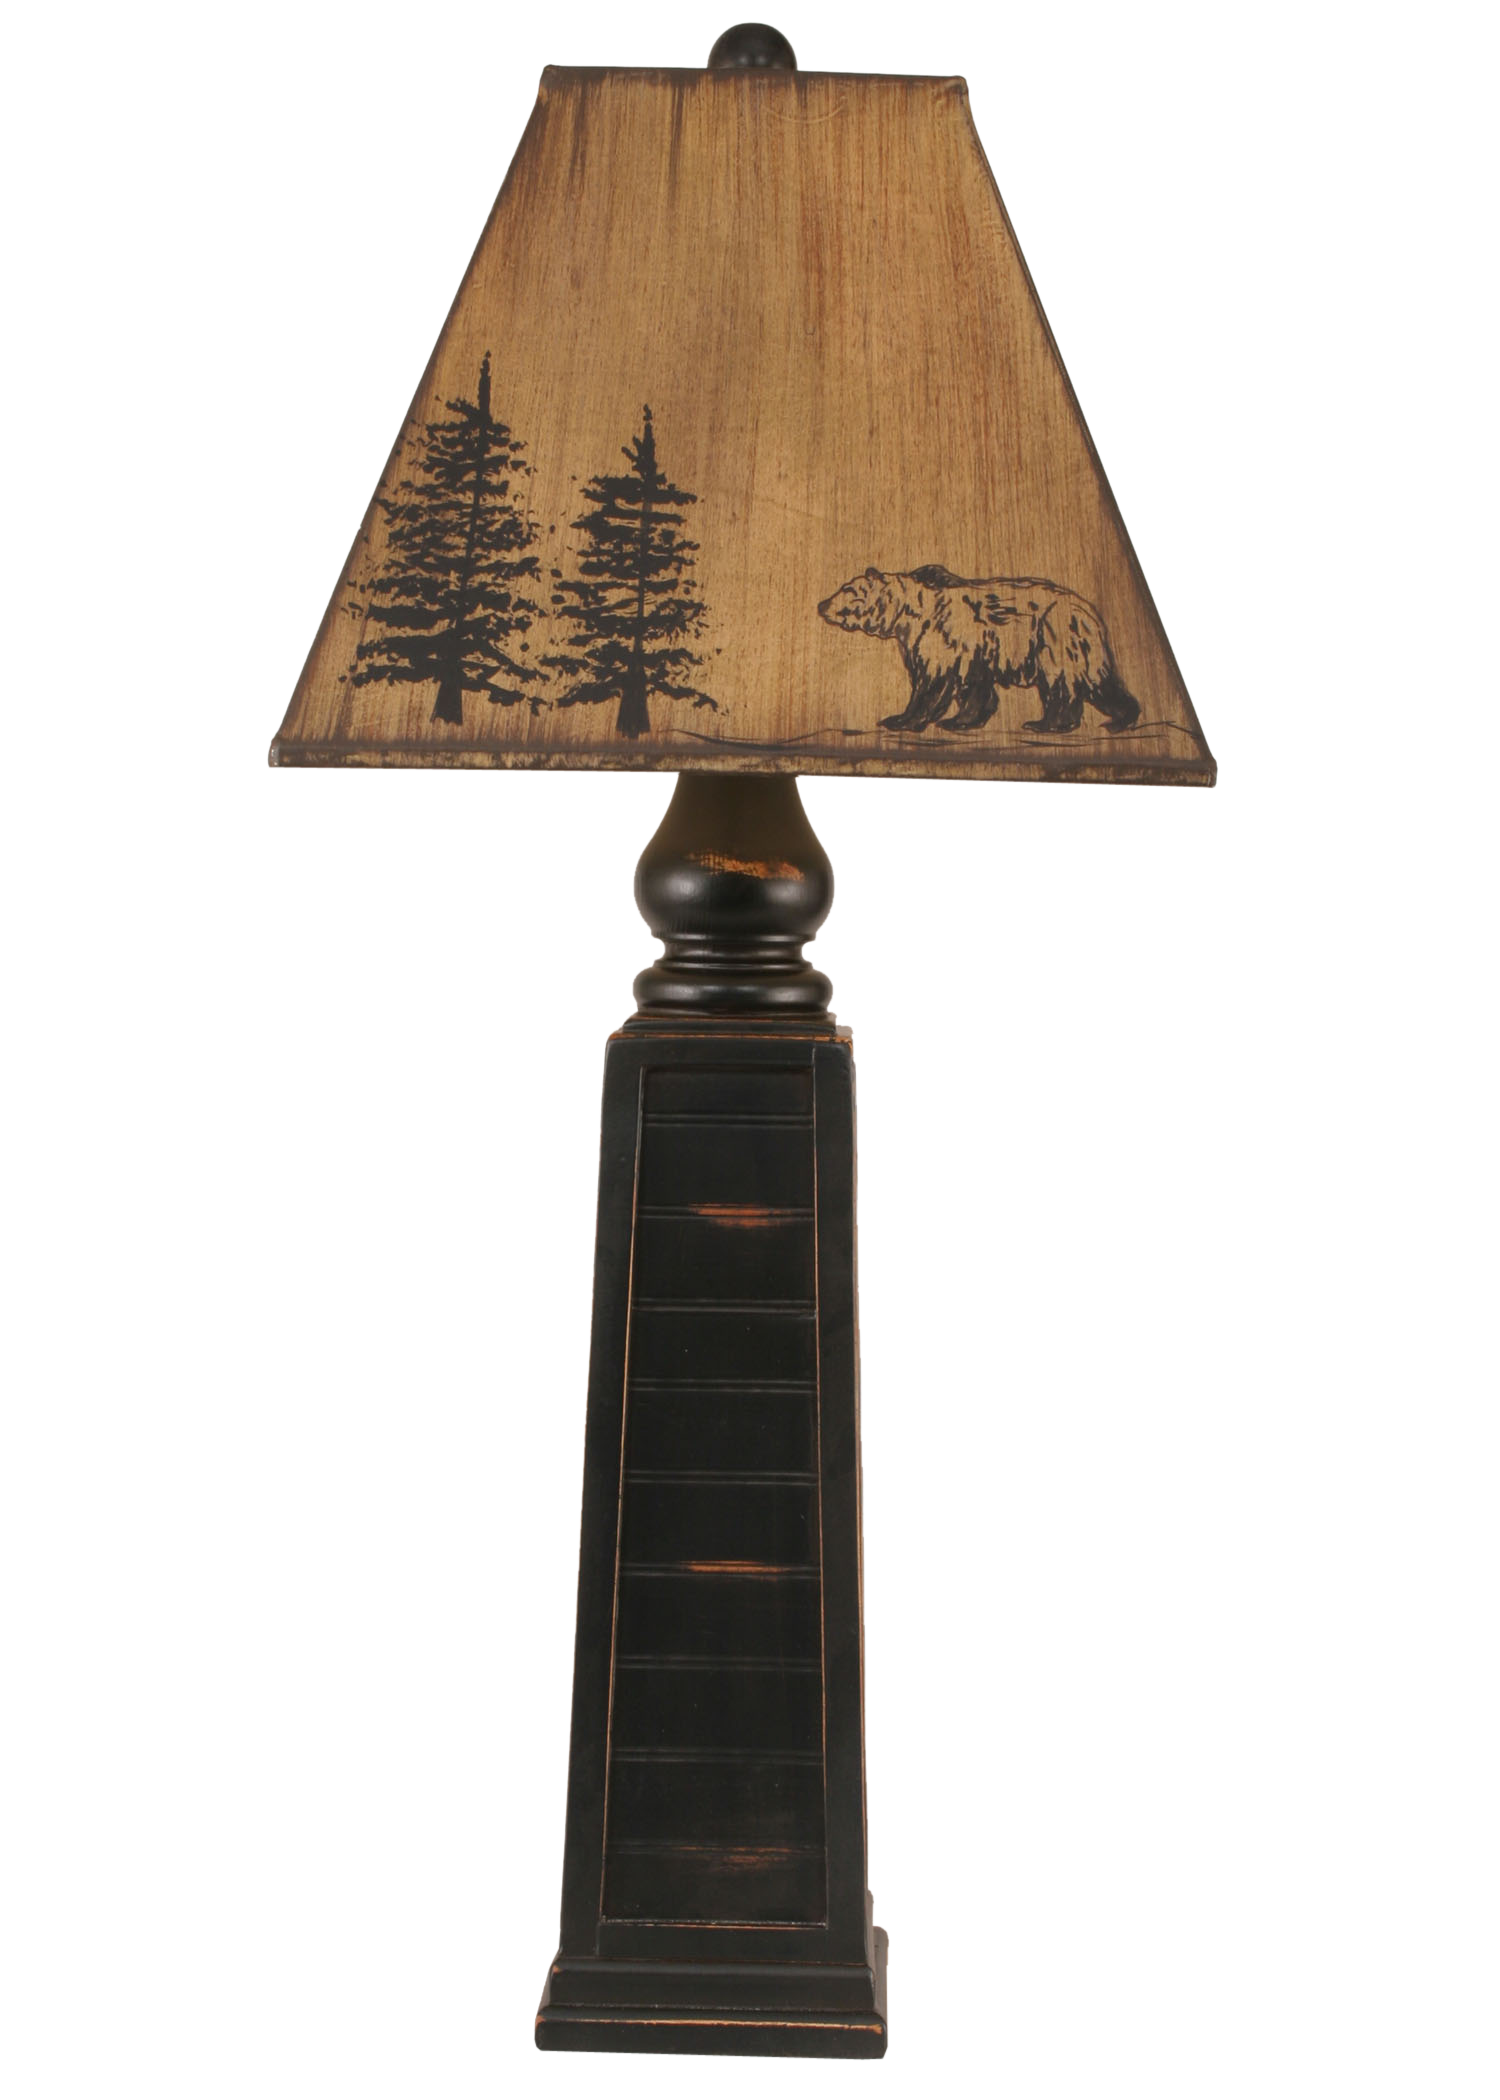 Distressed Black Pyramid Table Lamp w/ Bear Shade - Coast Lamp Shop